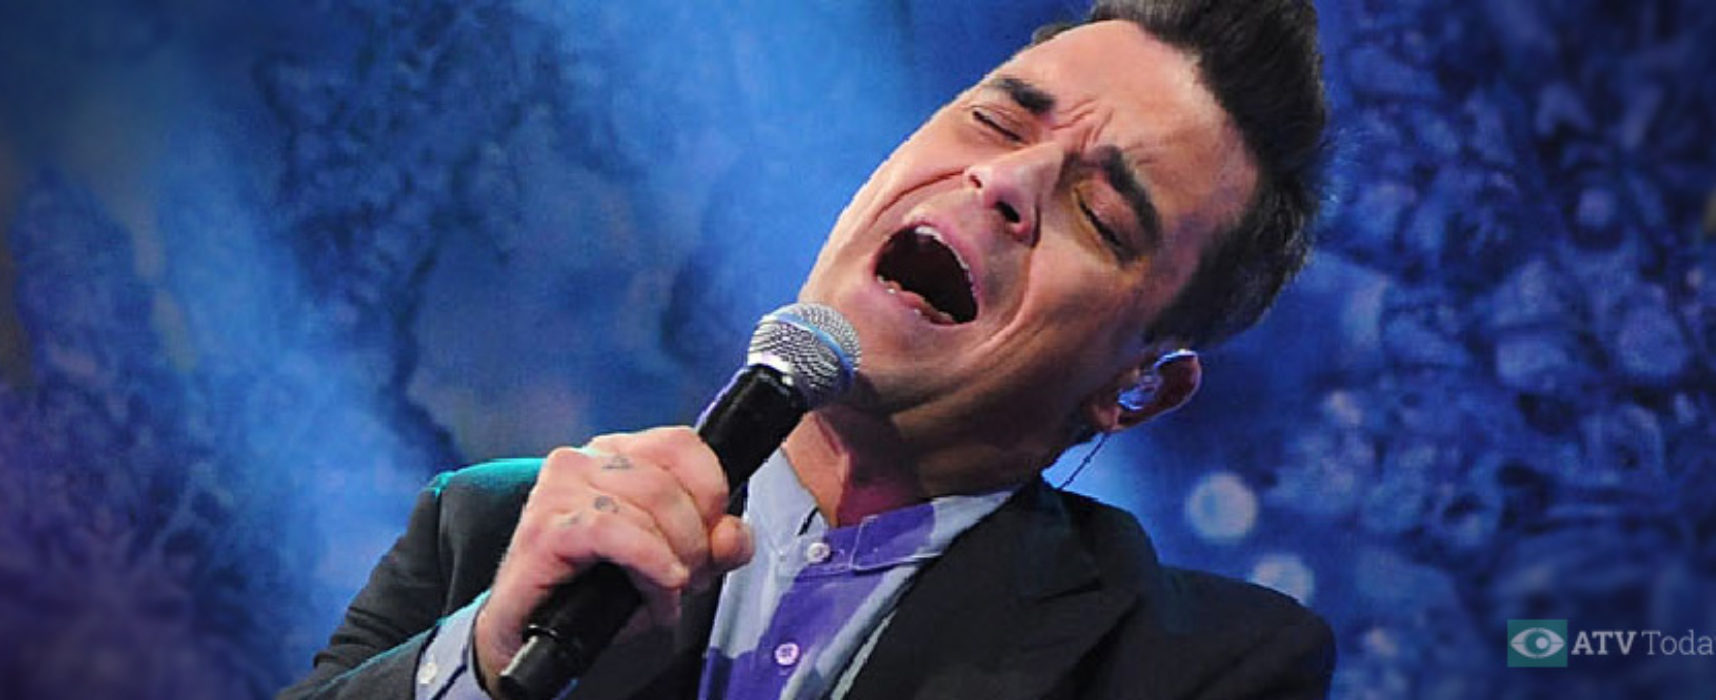 Robbie Williams for Royal Variety